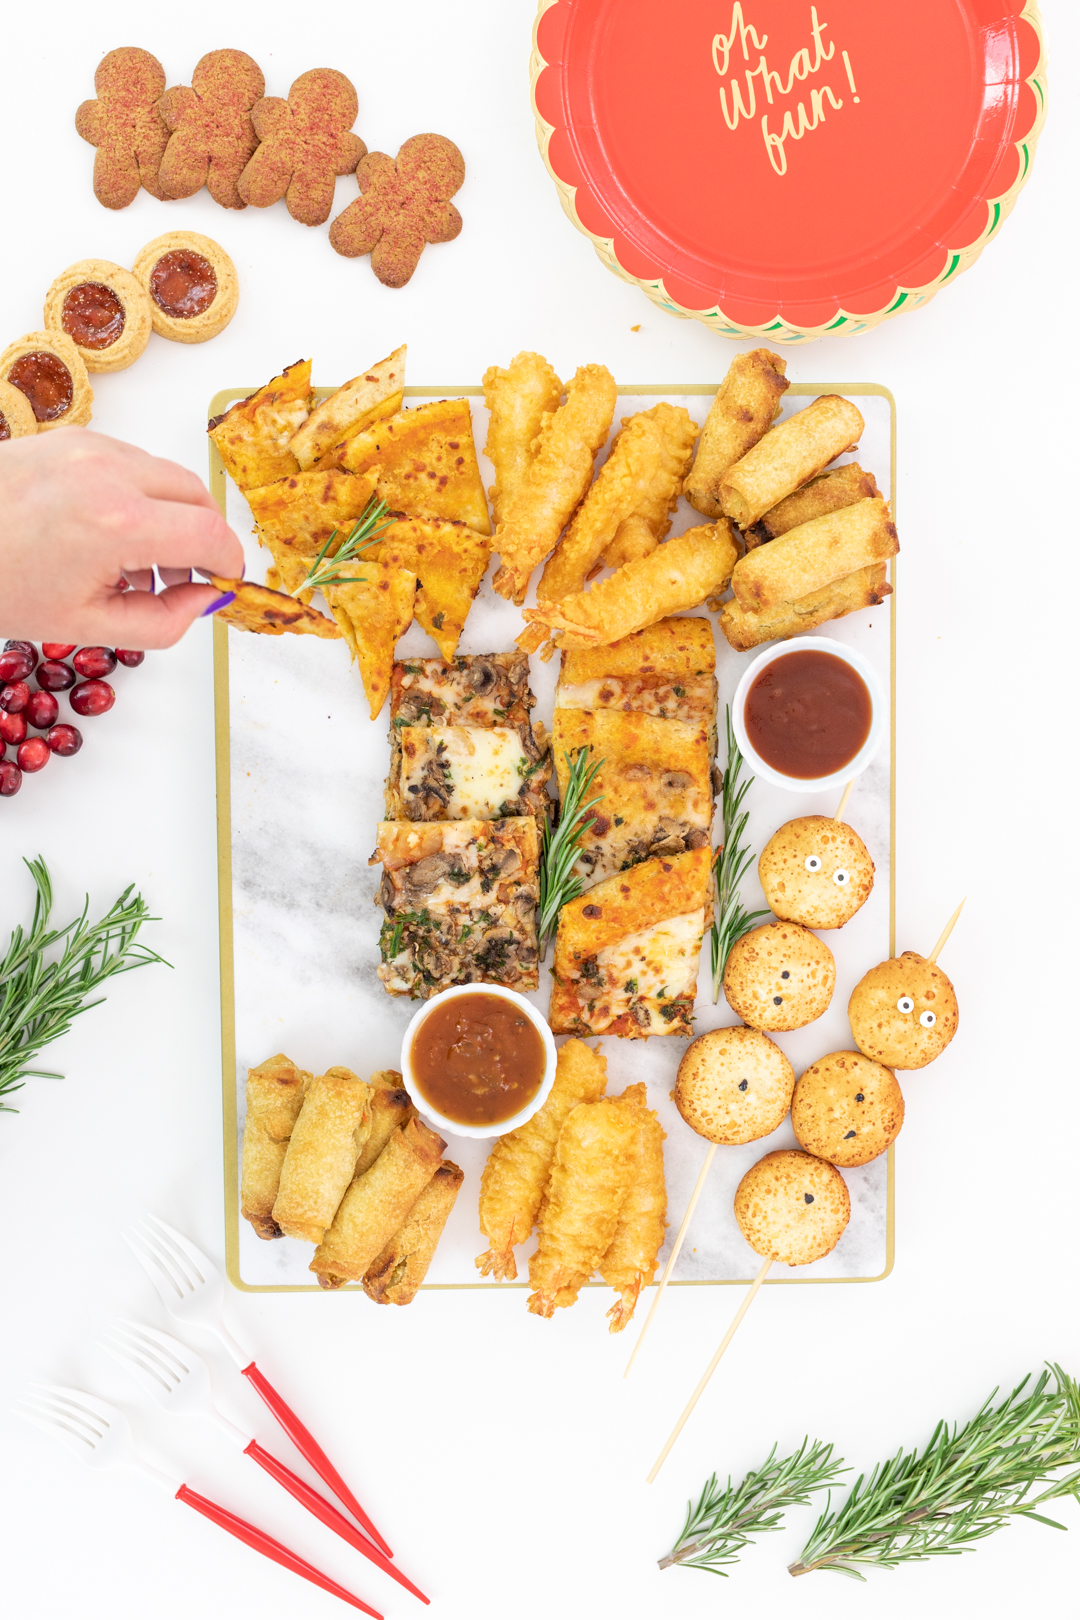 setting up an appetizer board with flatbread, eggrolls and shrimp